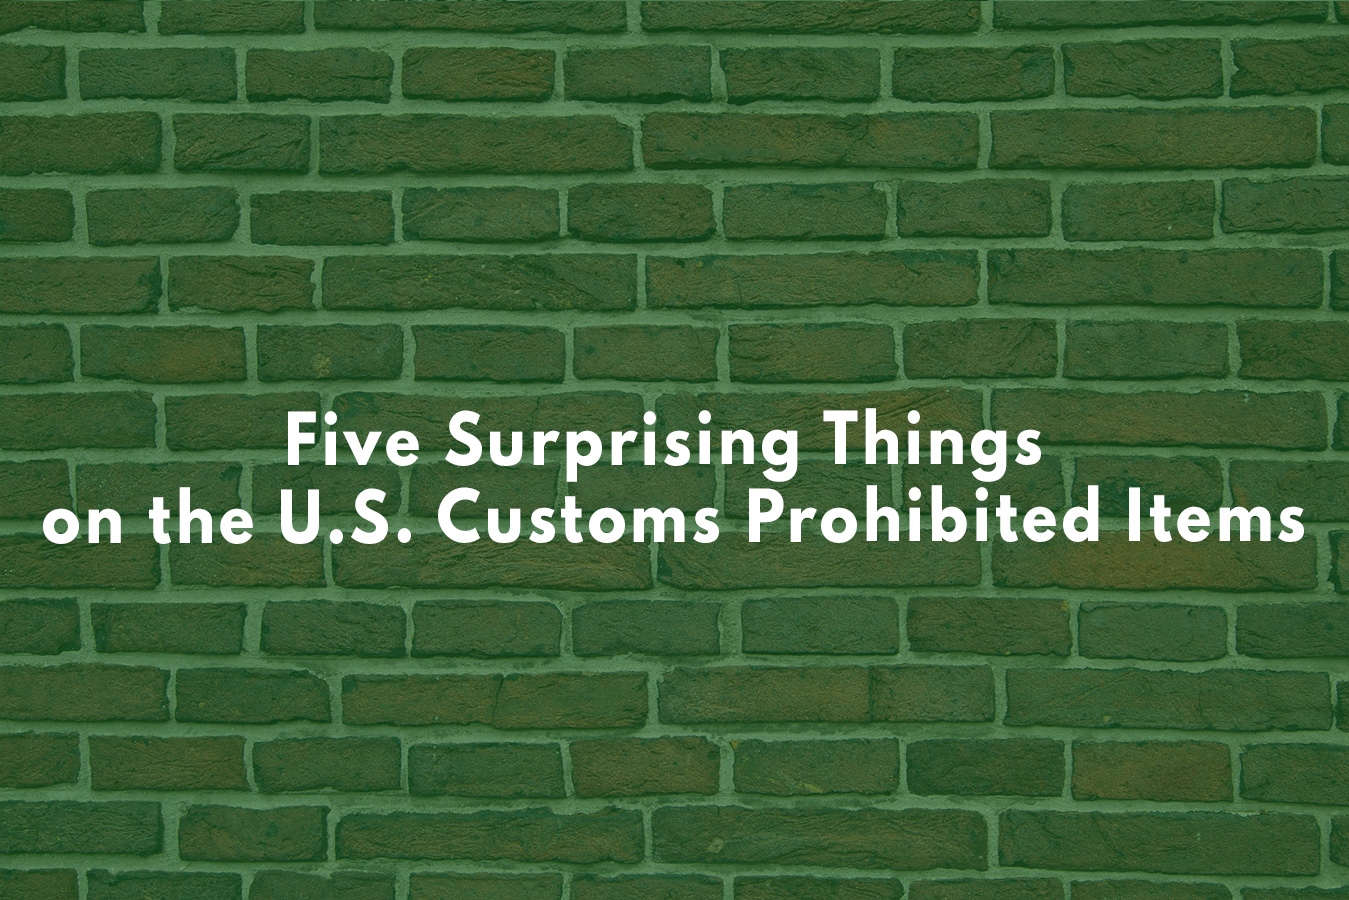 U.S. customs banned items